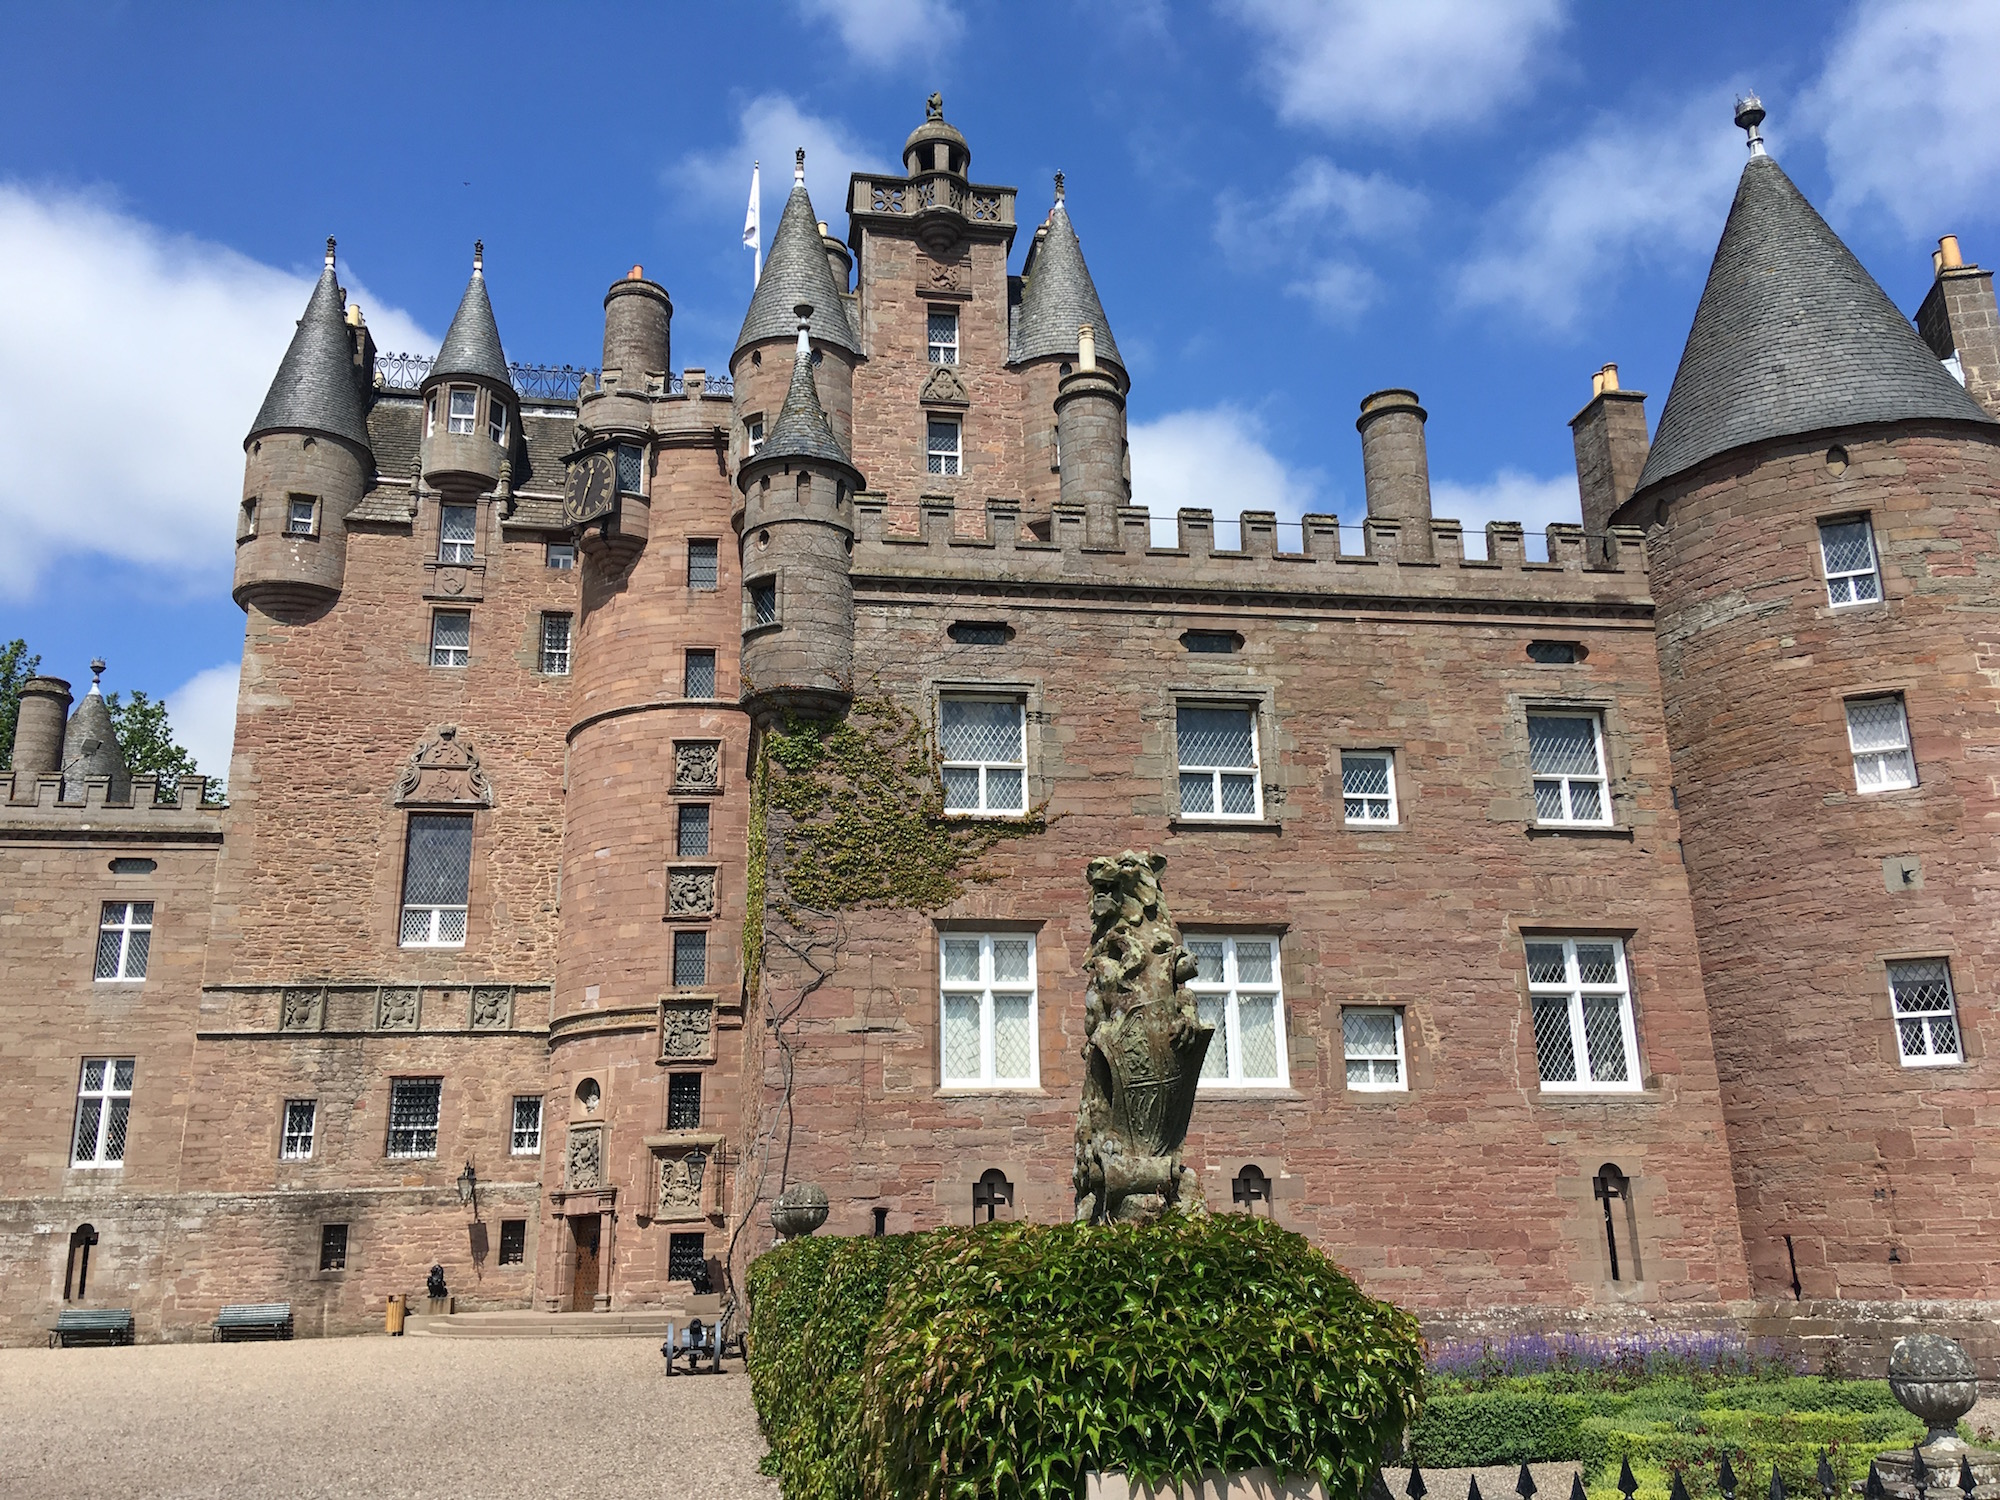 The front of Glamis Castle